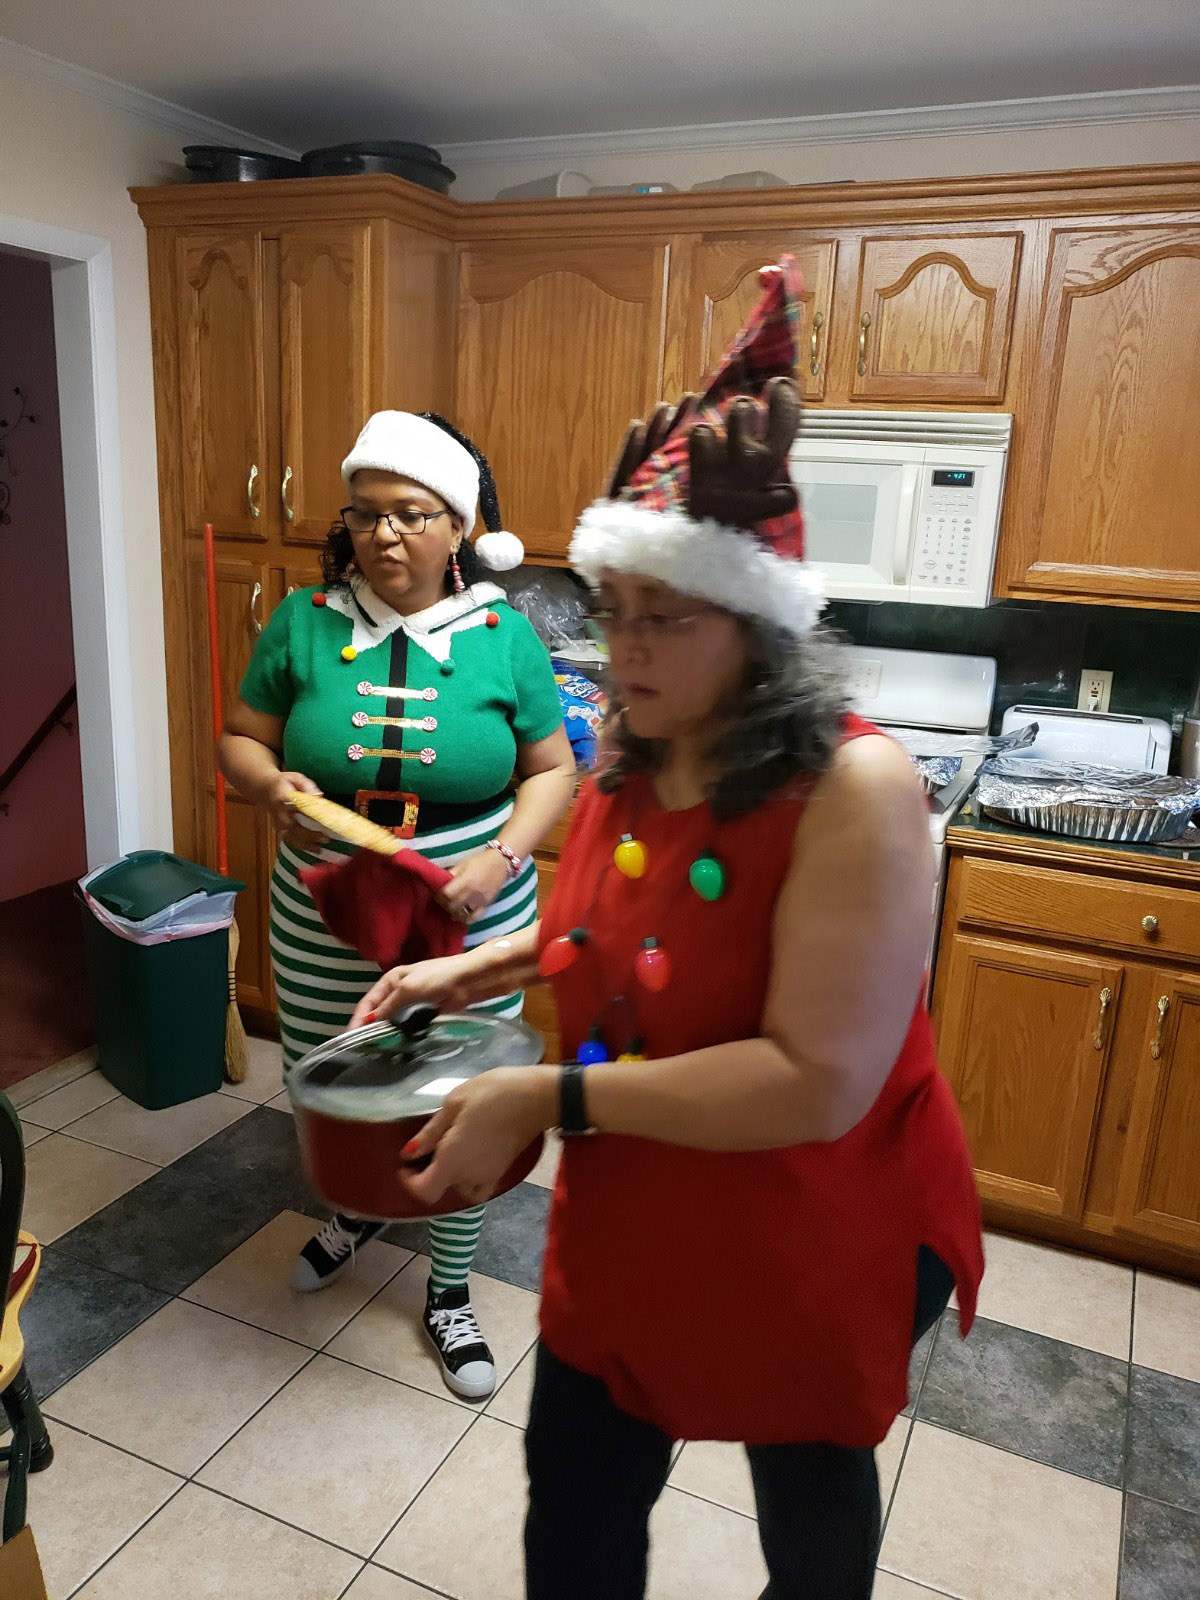 My sister, Renee, (in Christmas hat) and cousin, Anissa, (in elf custom) preparing Christmas dinner at Renee's home in King of Prussia, PA. Photo by Paula Cooper.